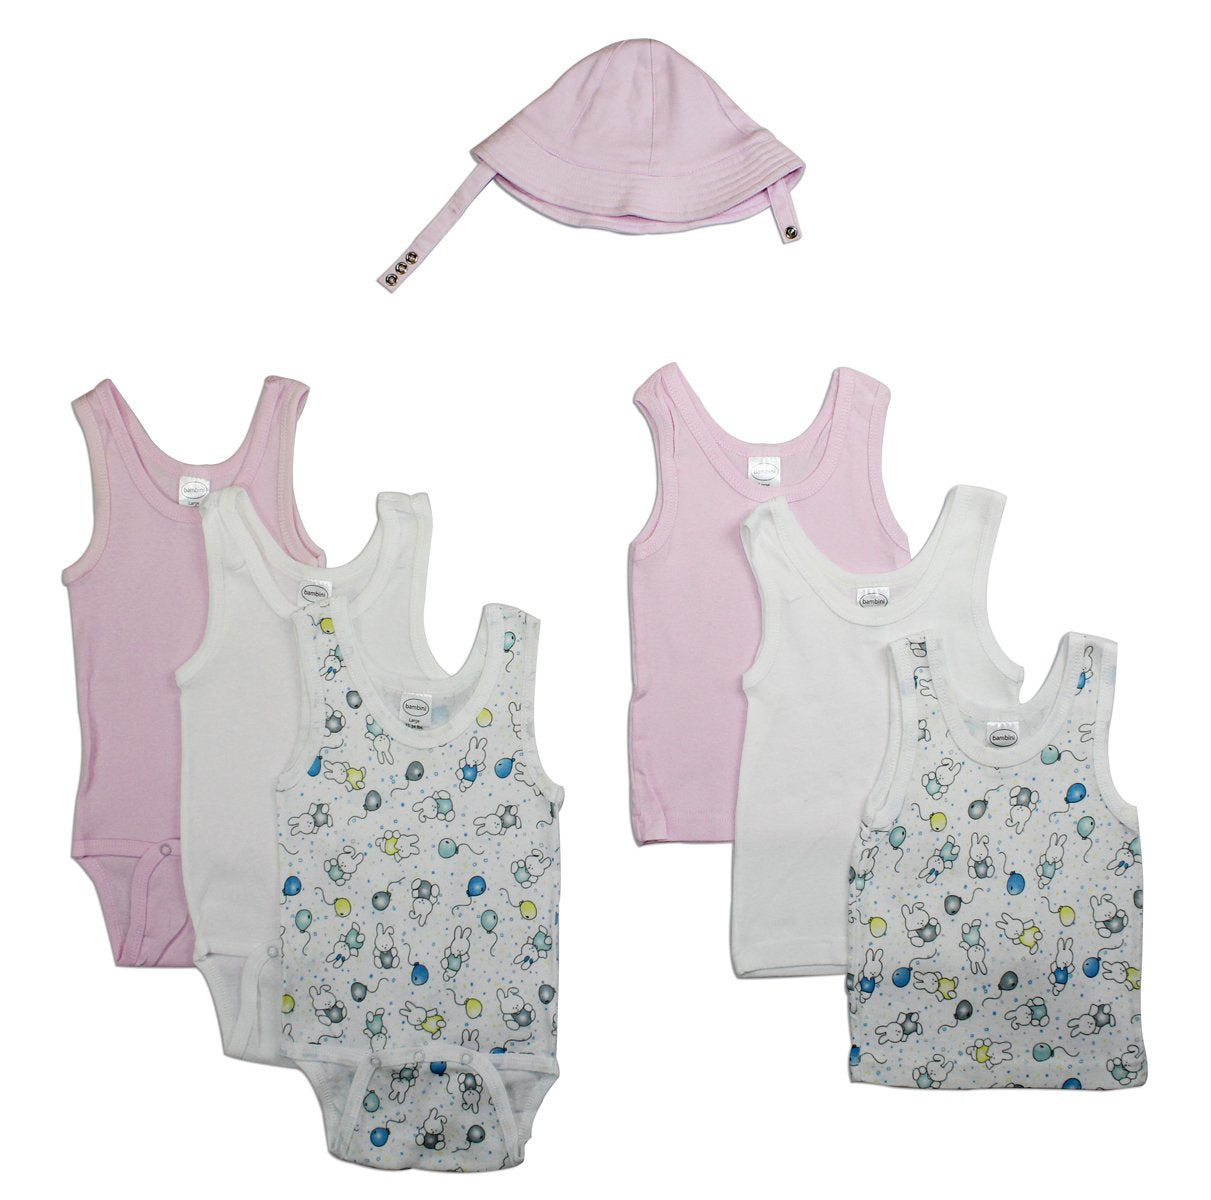 Bambini Girls' Summer 7 Piece Layette Set - Baby World Inc